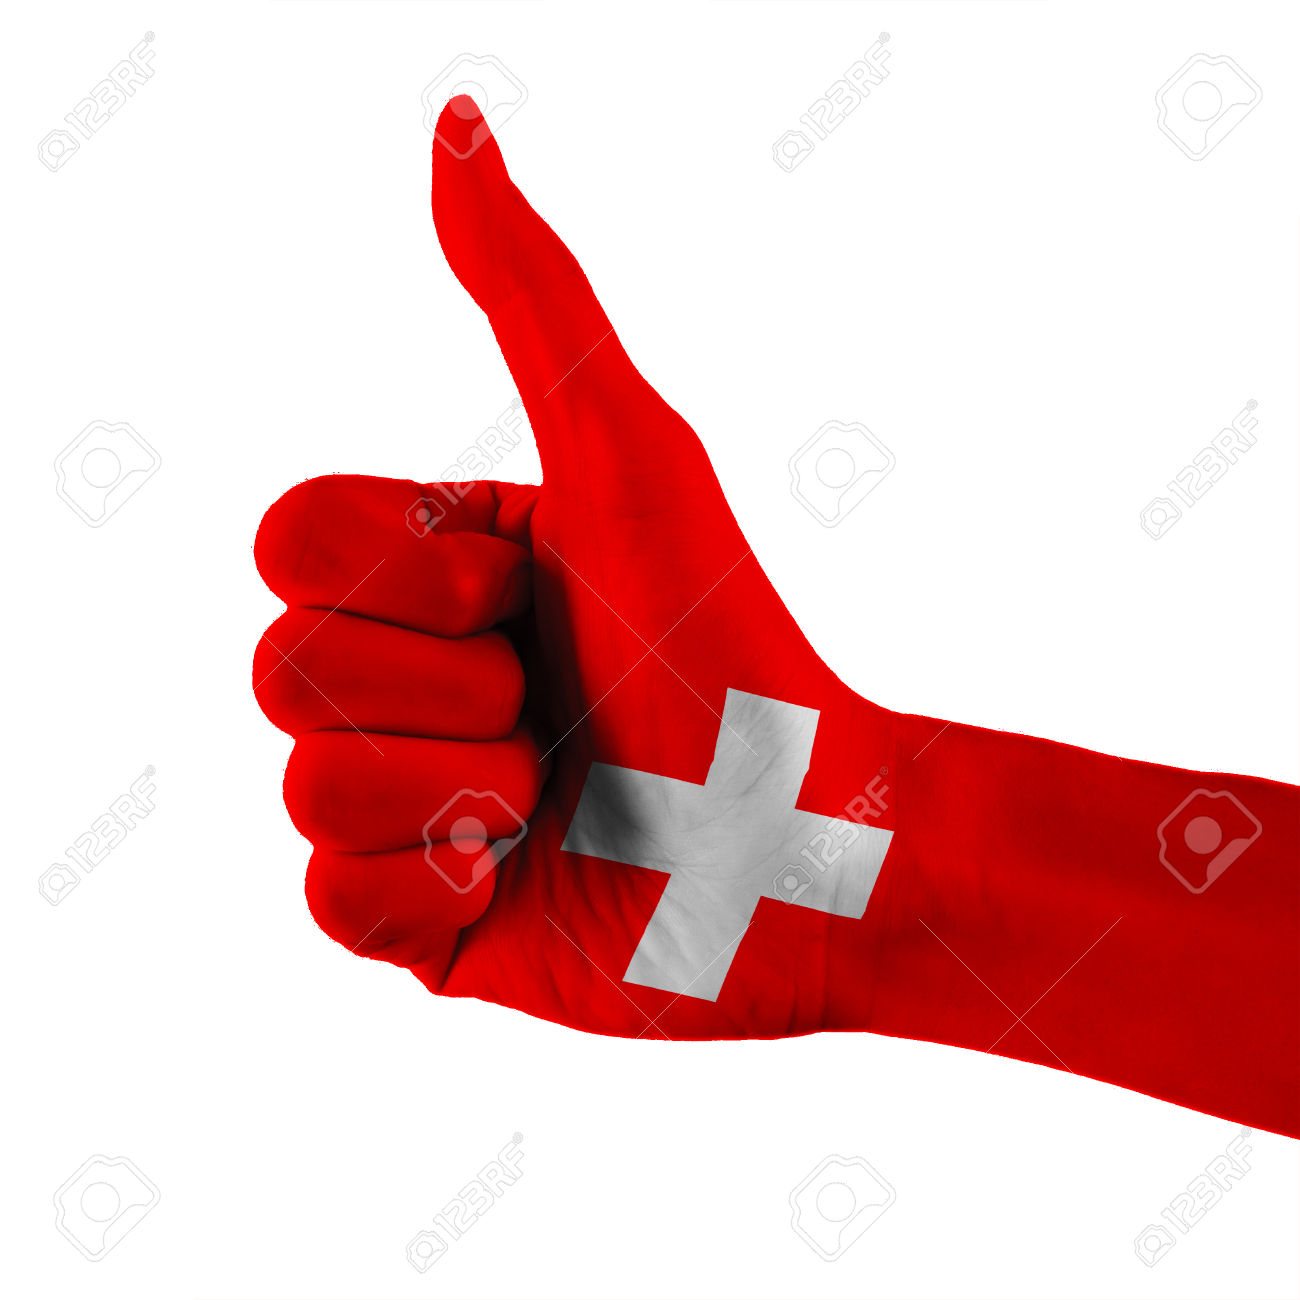 Switzerland Or Swiss Flag Painted Hand Showing Thumbs Up Sign.